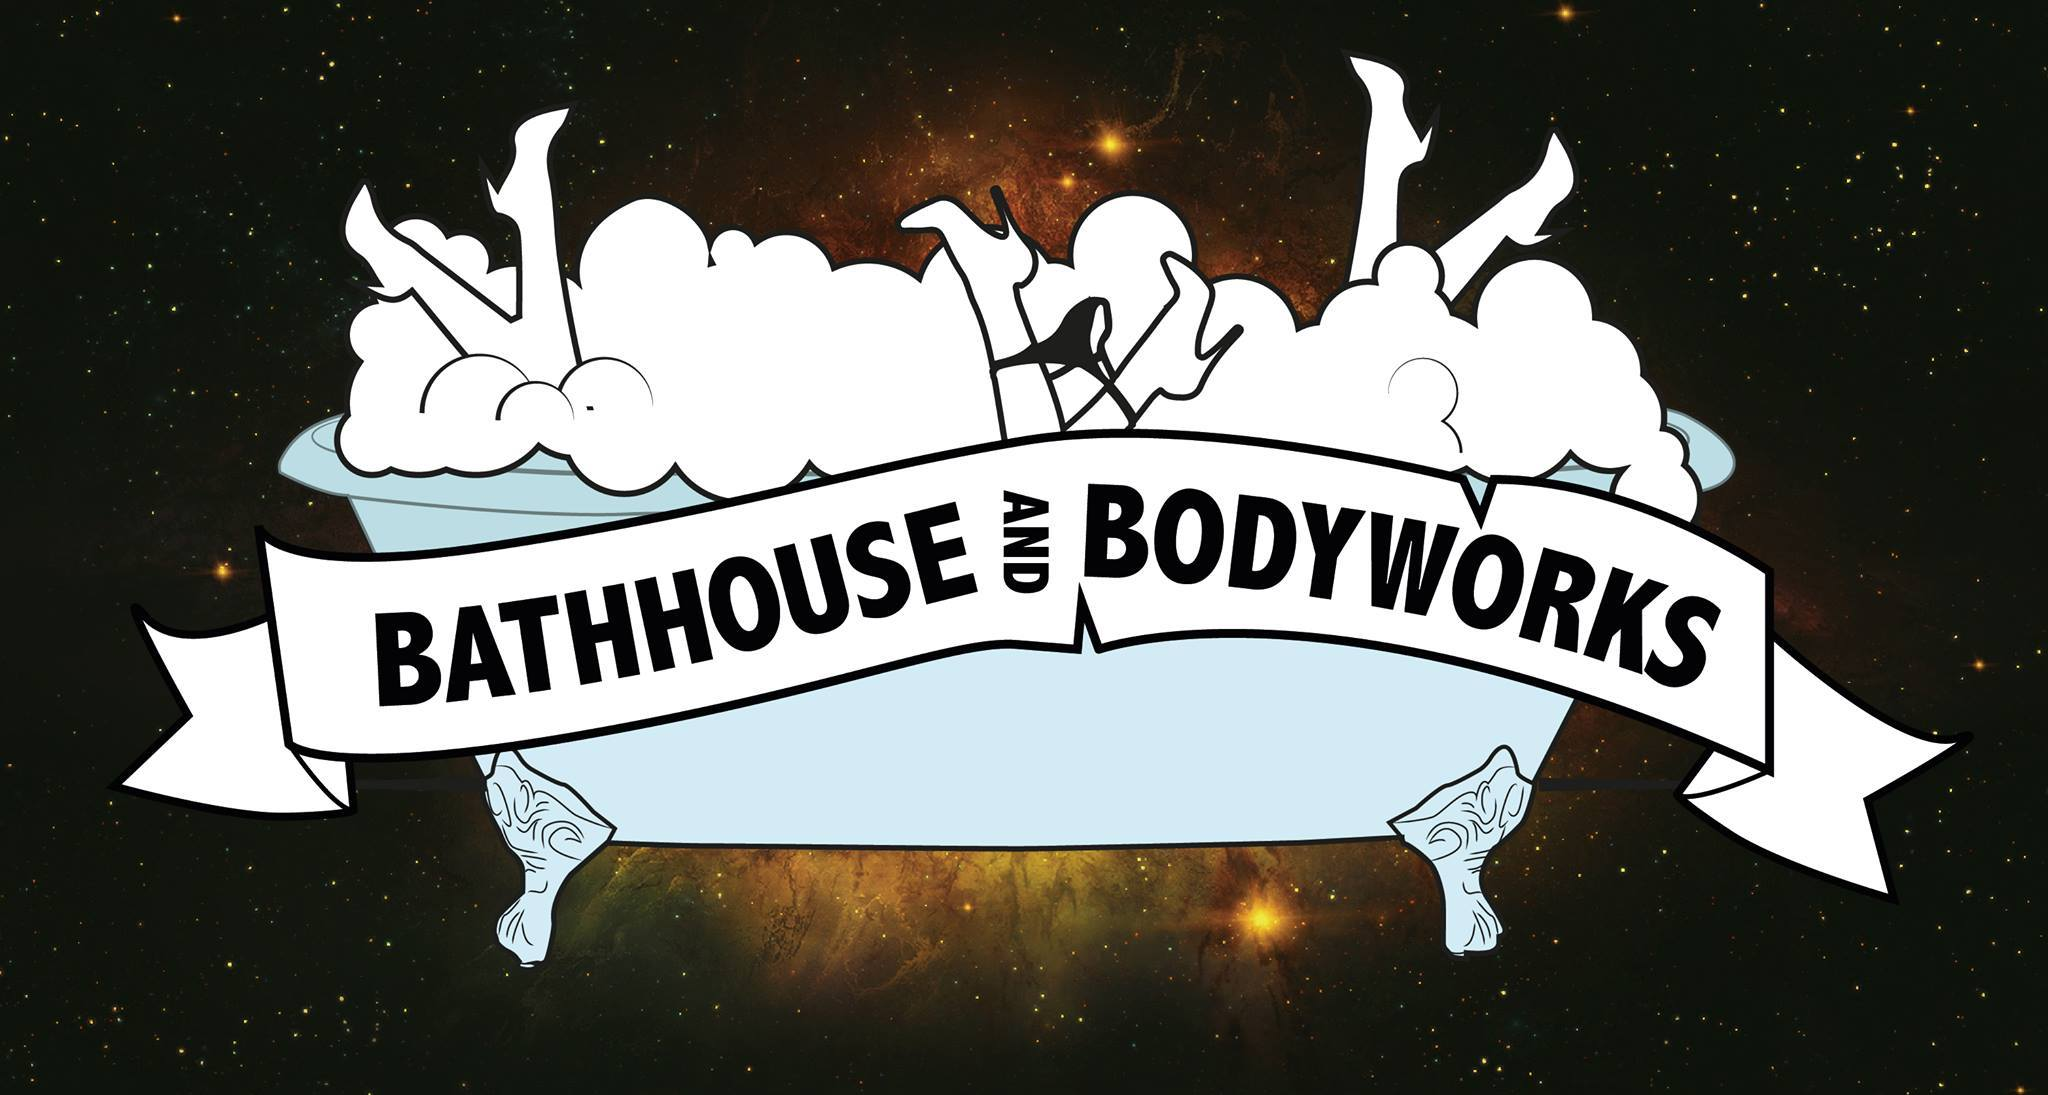 Alternaqueer: Bathhouse and Body Works Logo